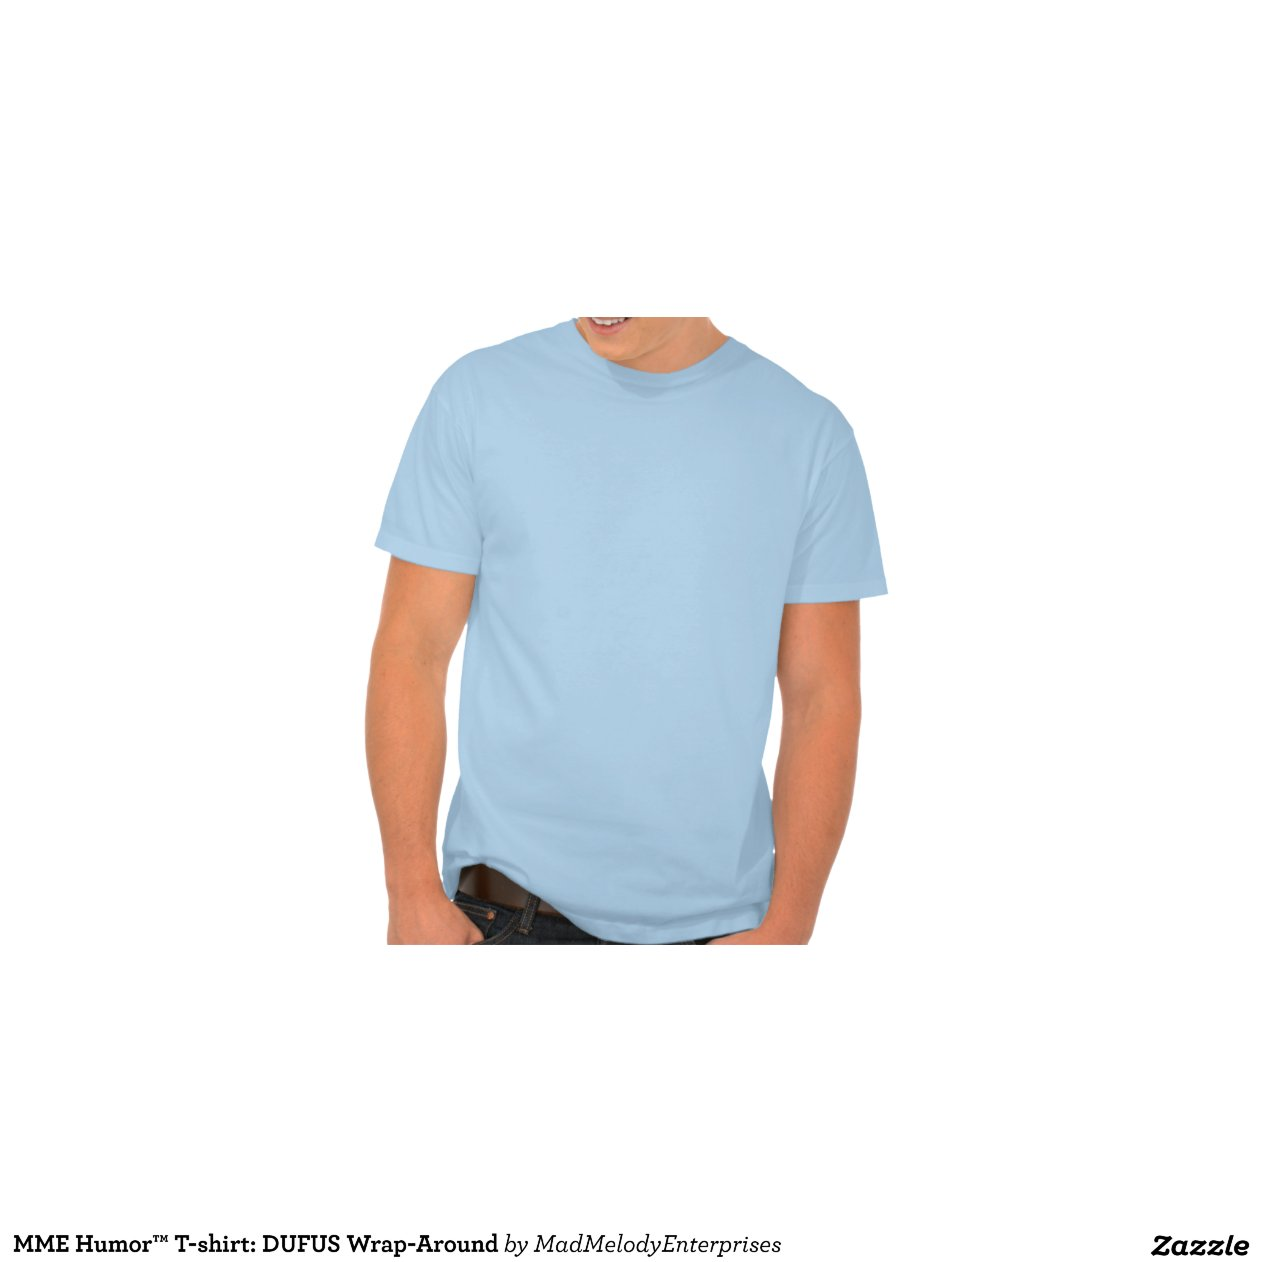 Mme humour t shirt dufus wrap around zazzle for Wrap style t shirts